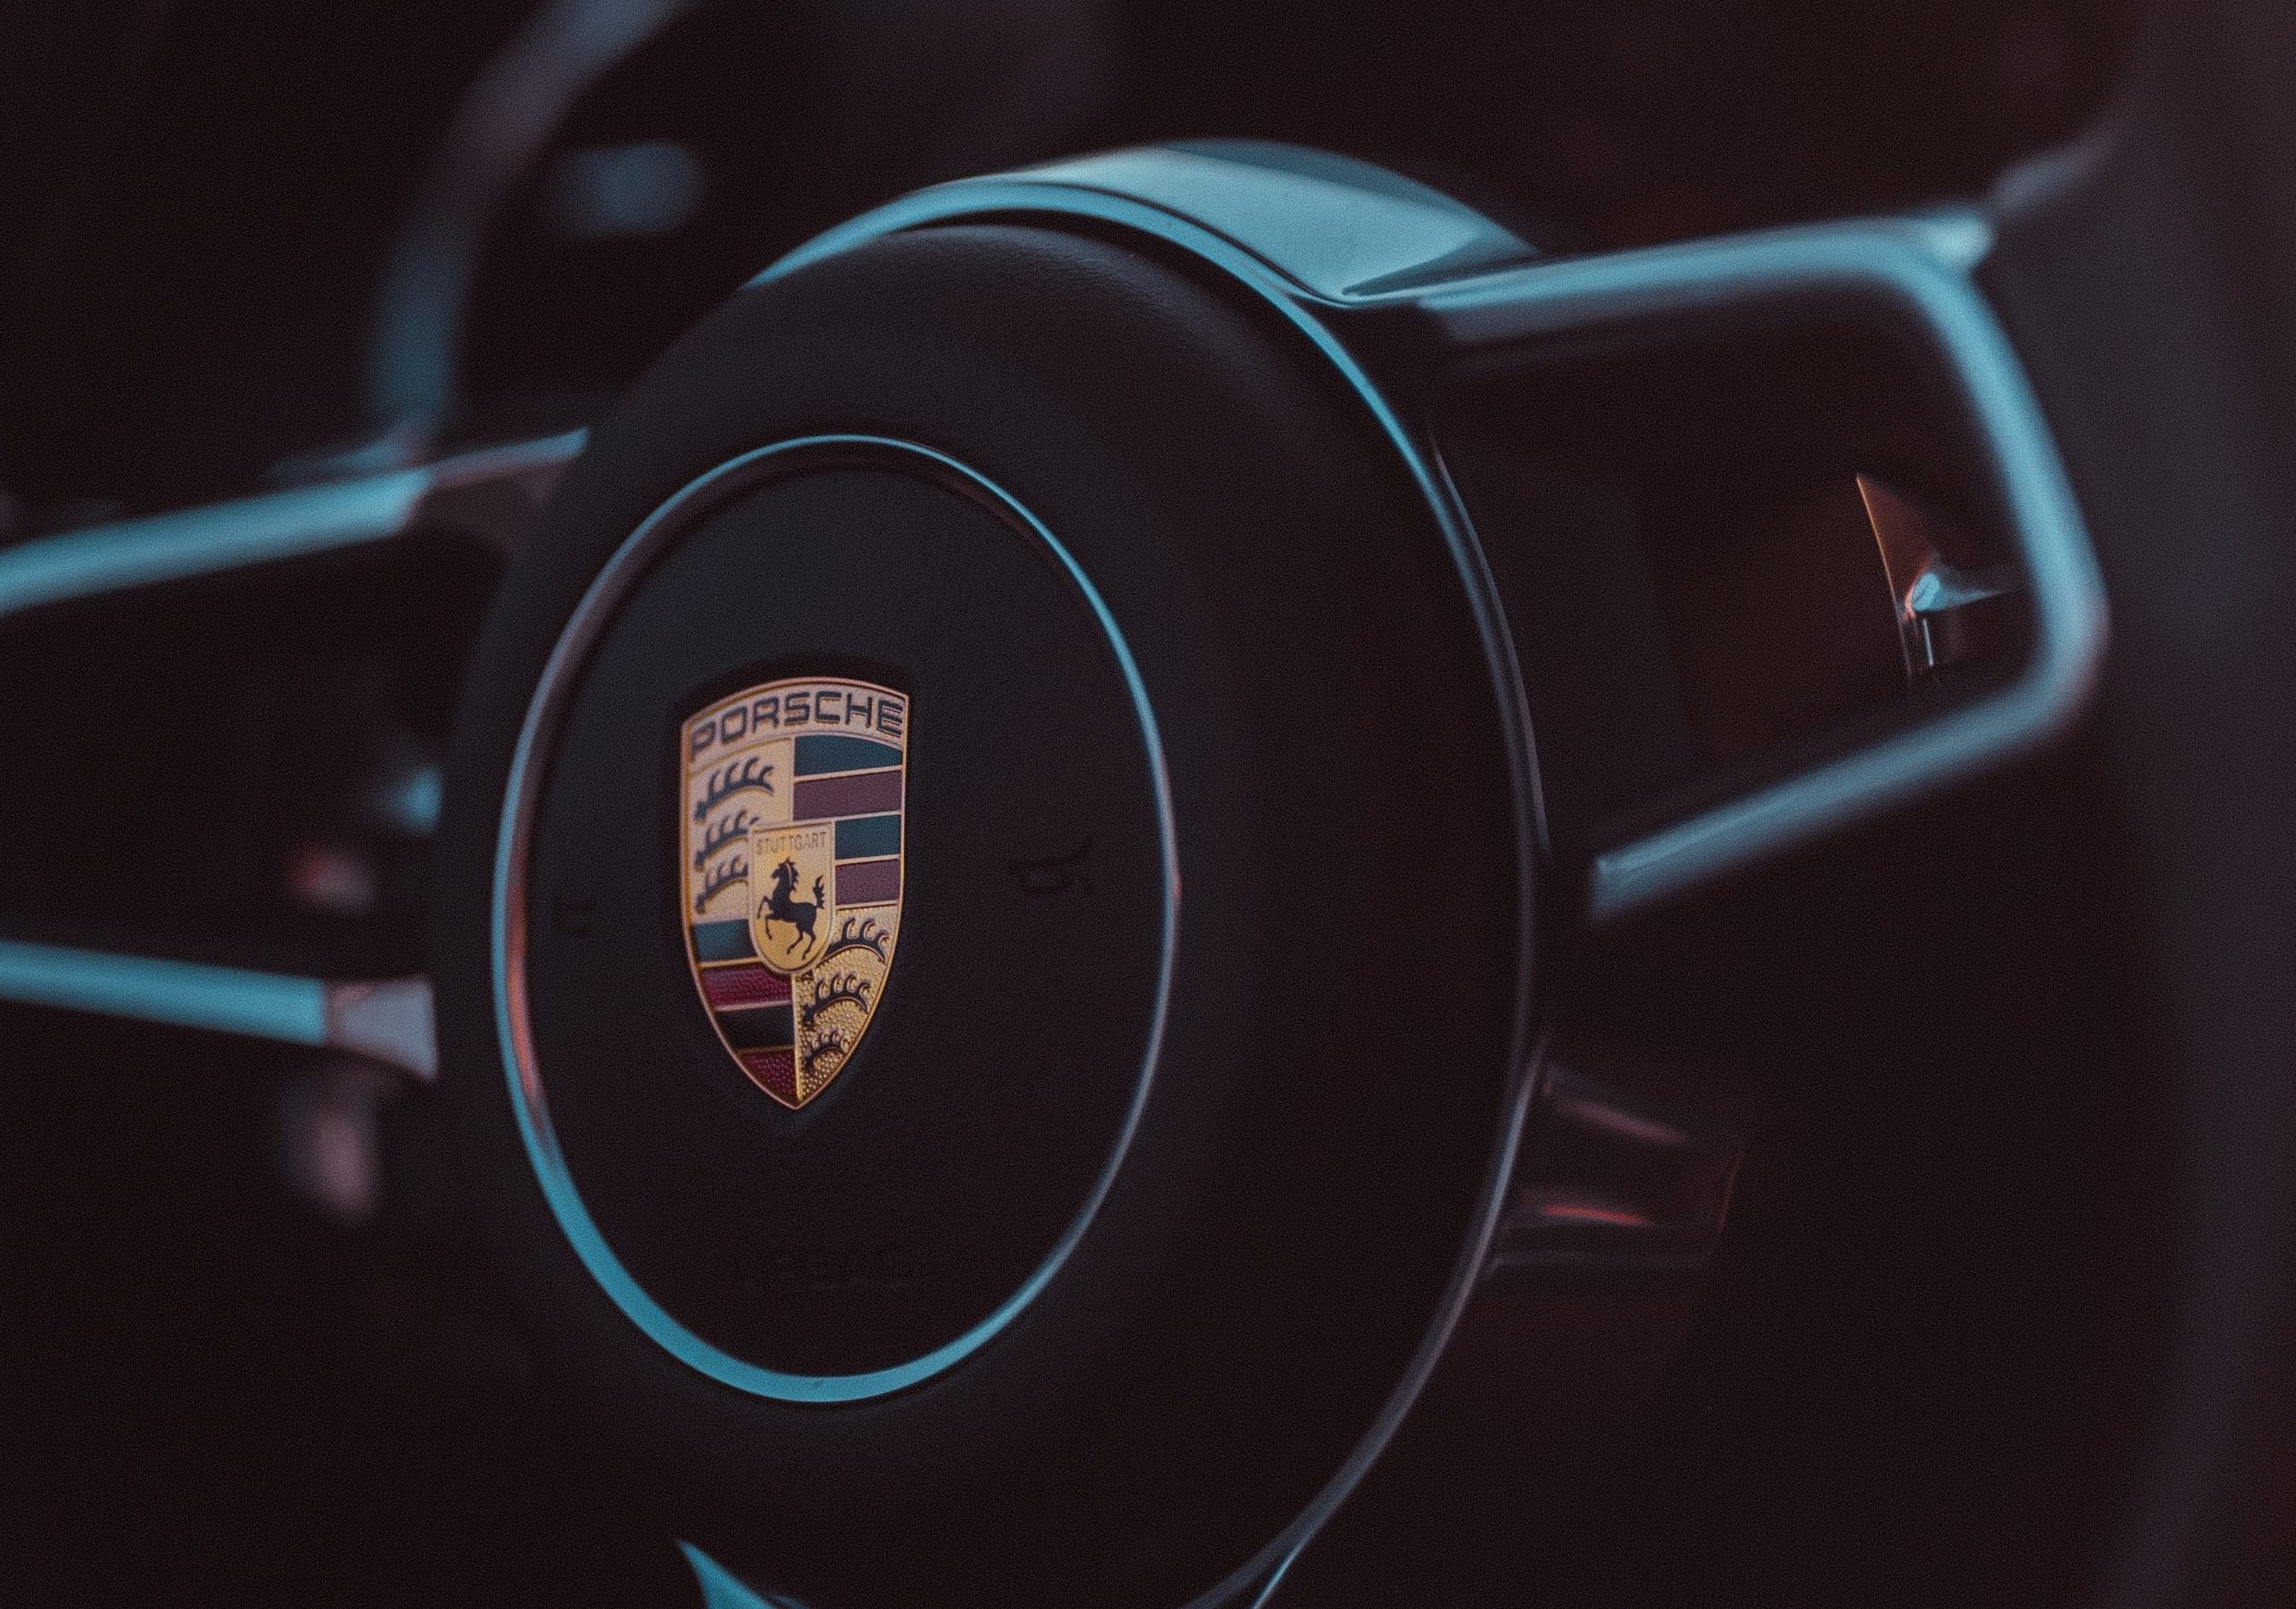 Porsche and Their Panamera Turbo S E-Hybrid Sport Turismo is Great